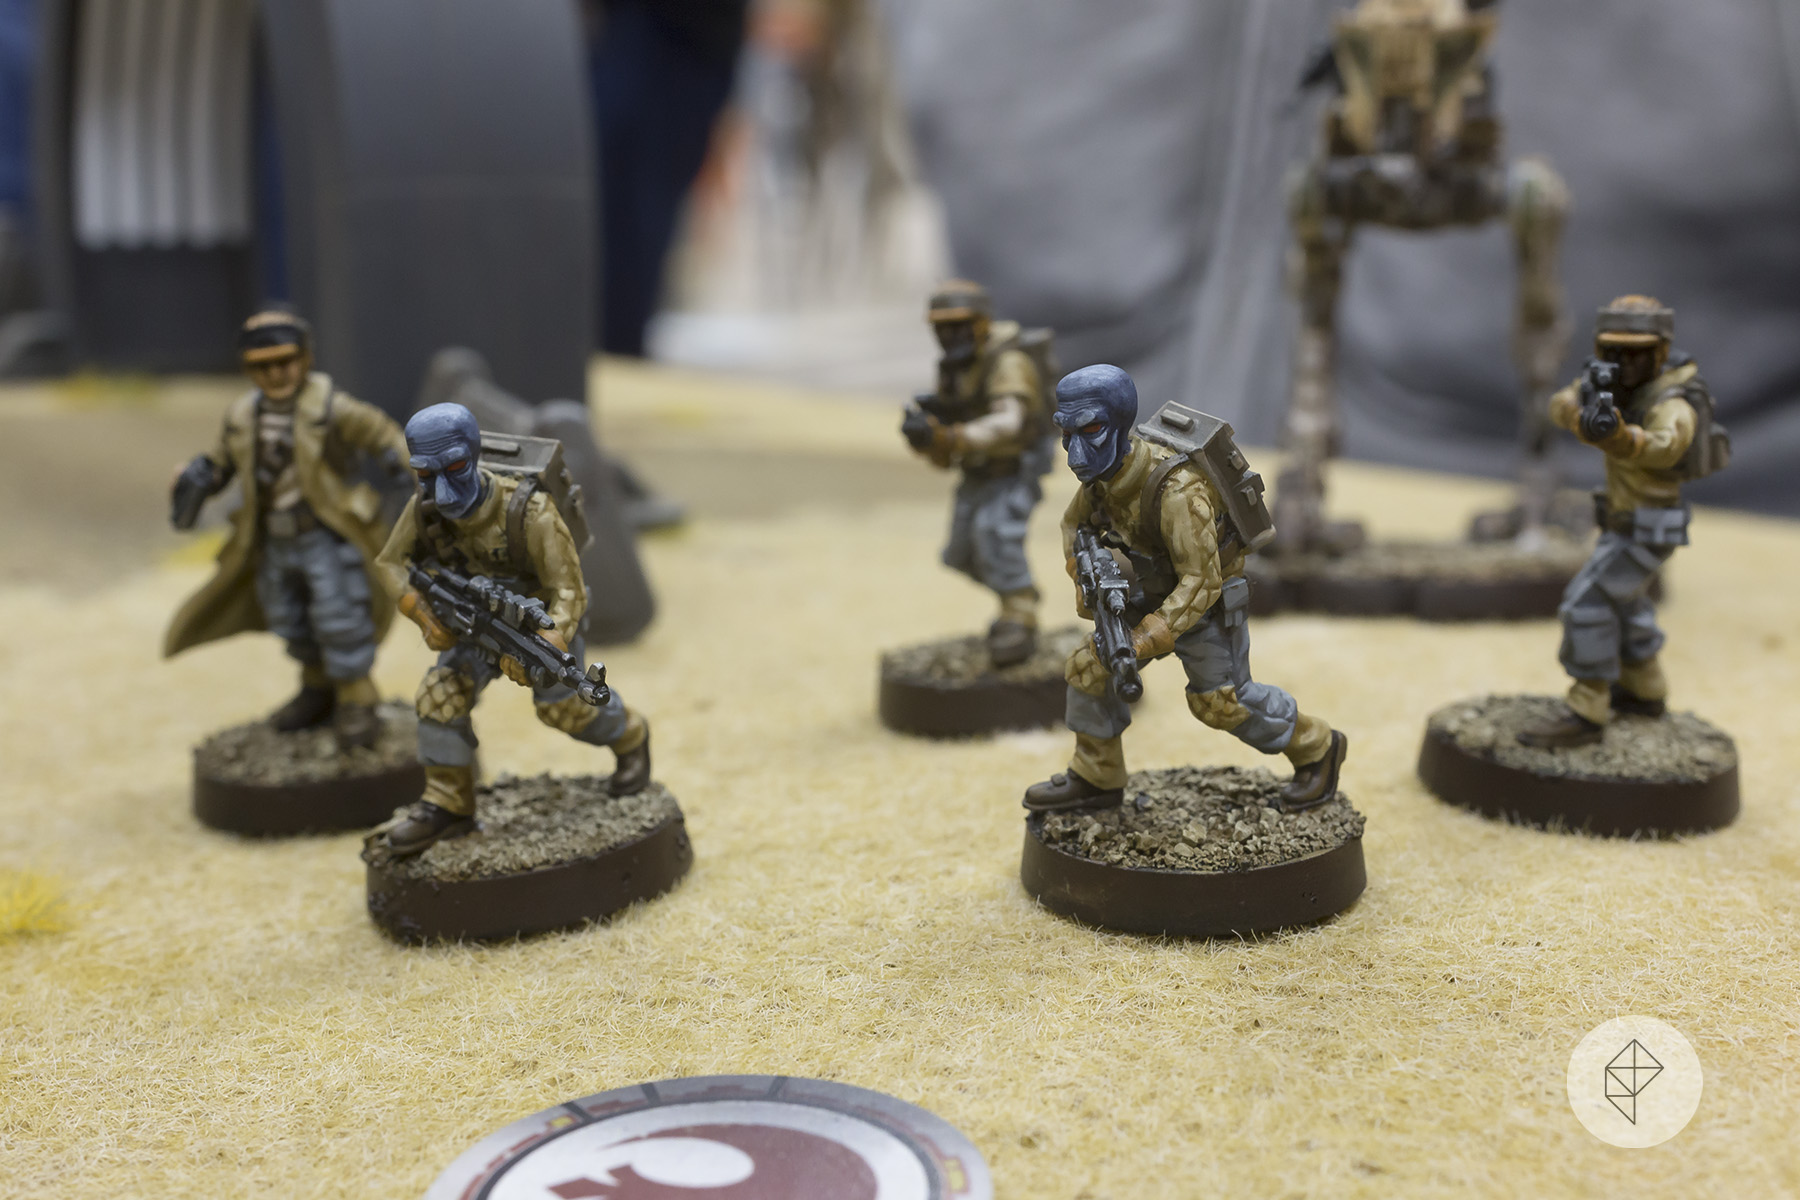 Star Wars: Legion is a starter set, not a complete tabletop